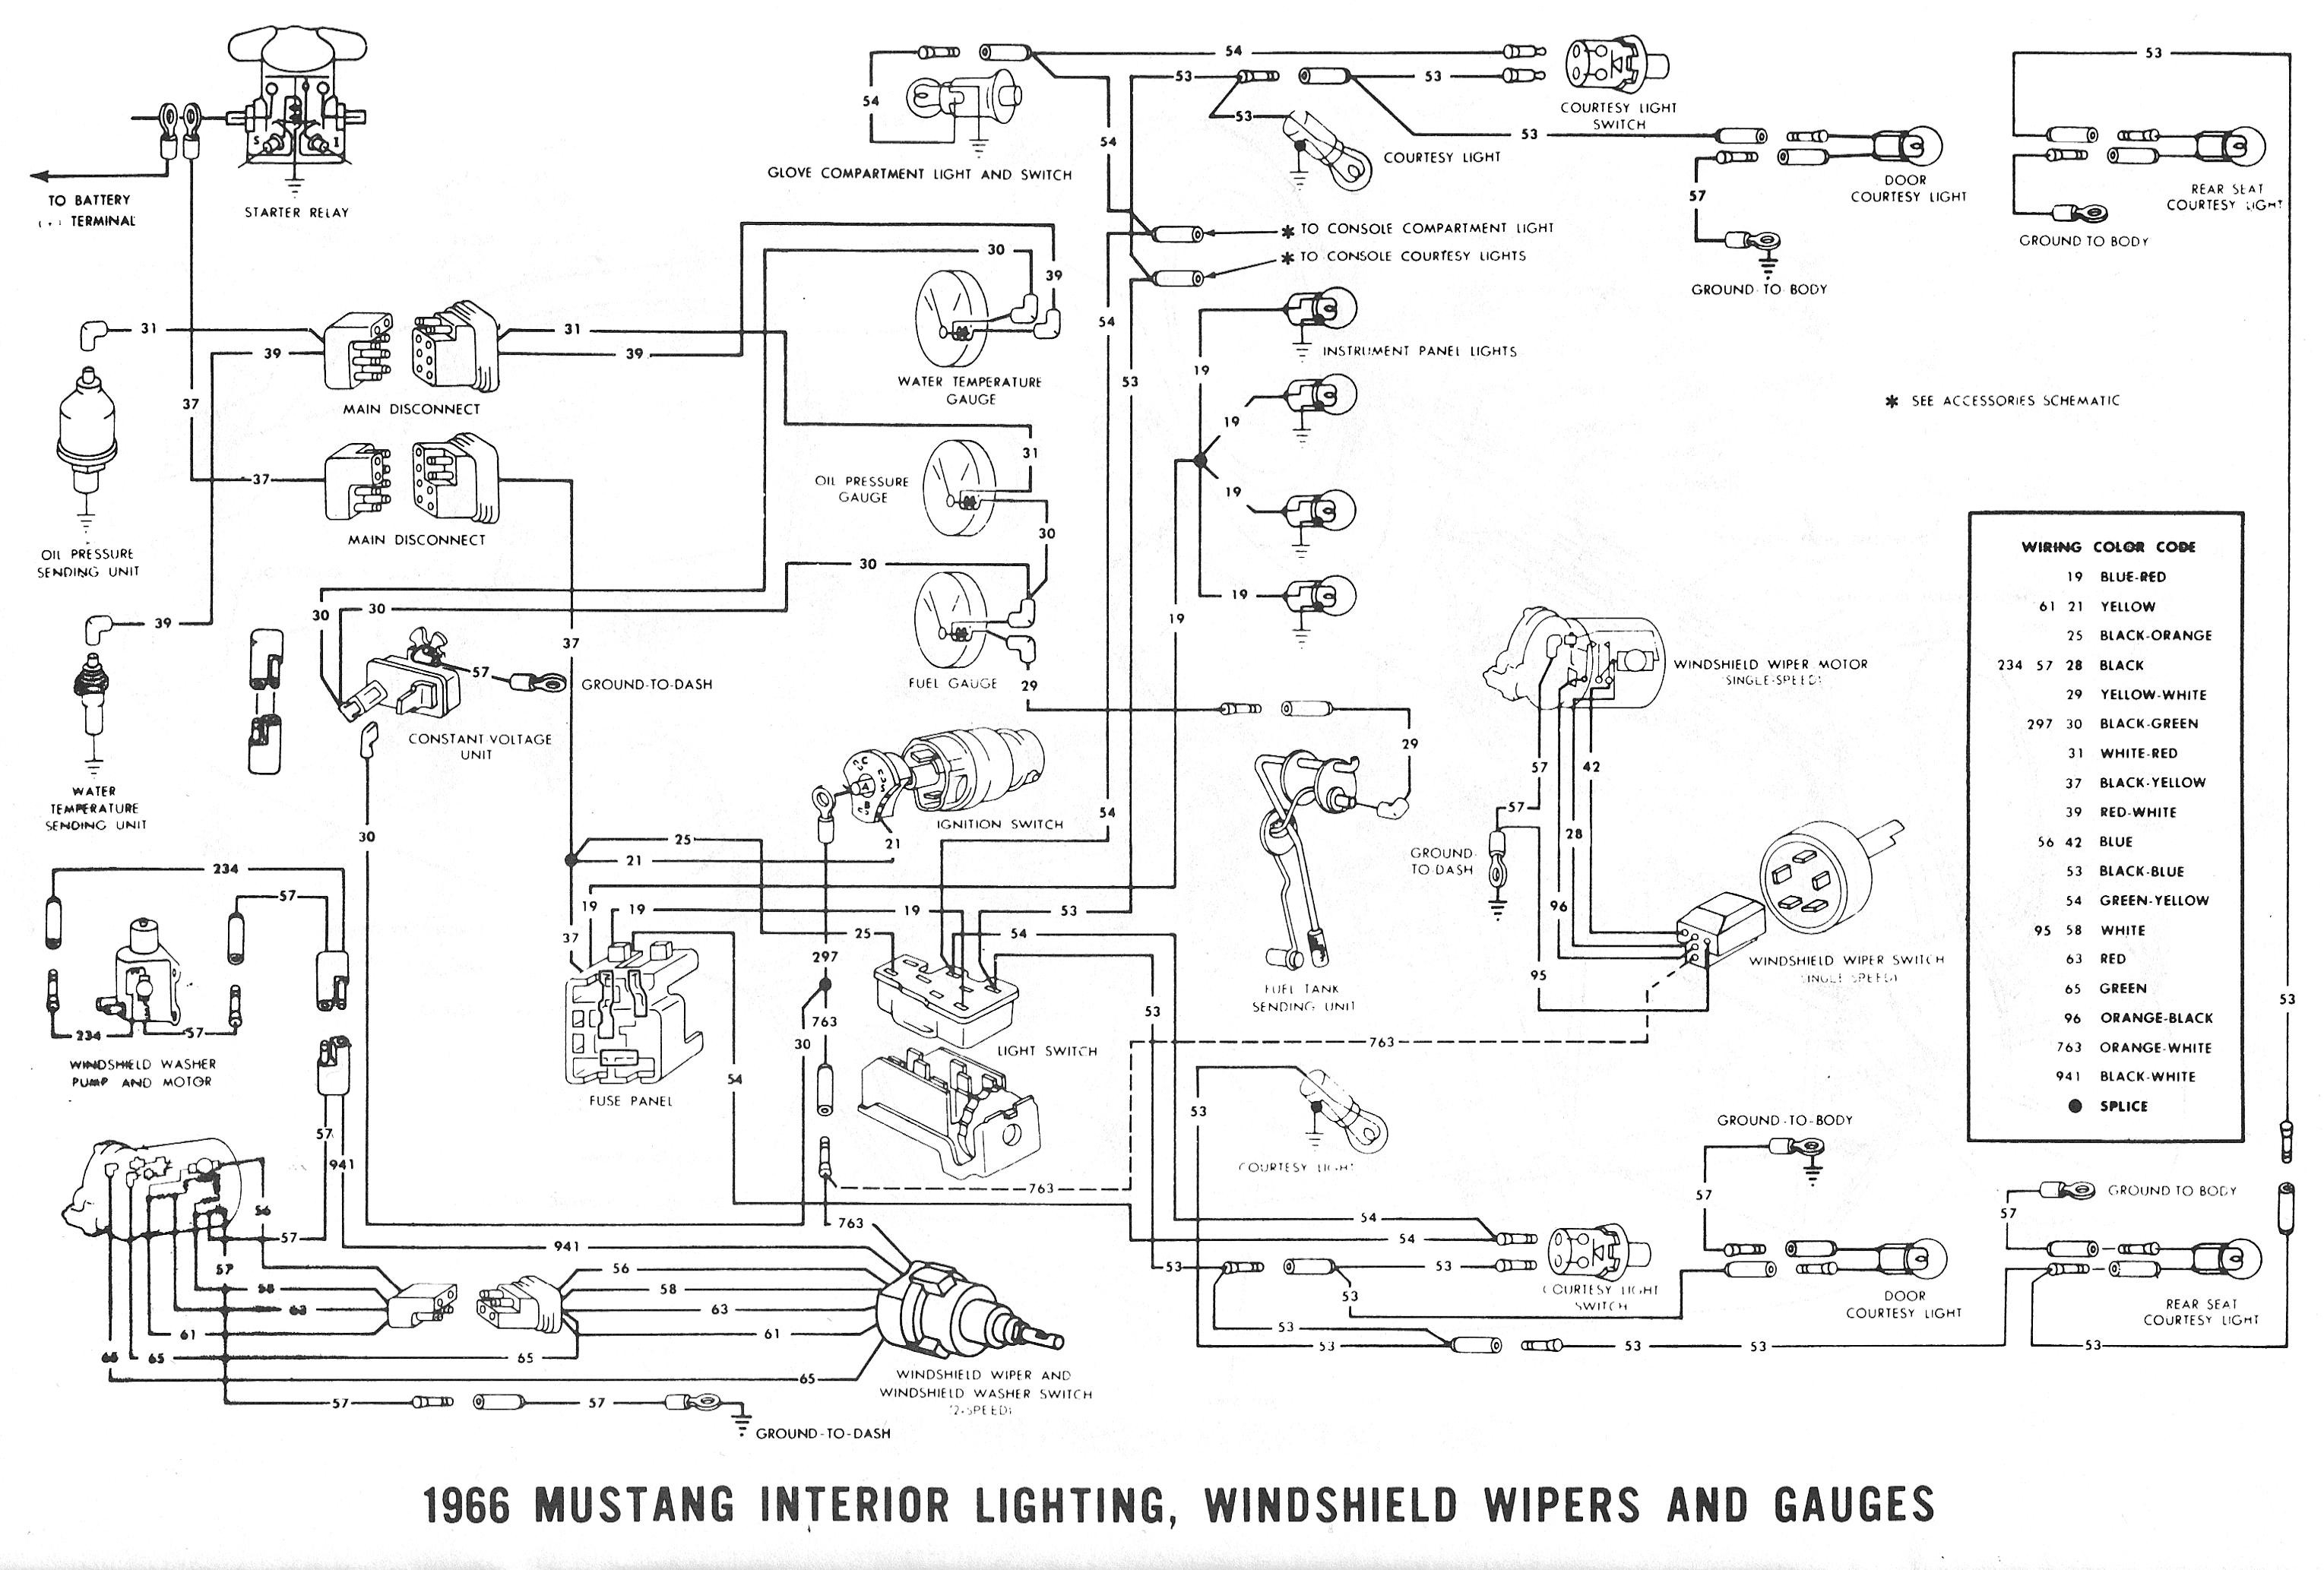 1965 ford Mustang Wiring Diagram | Free Wiring Diagram